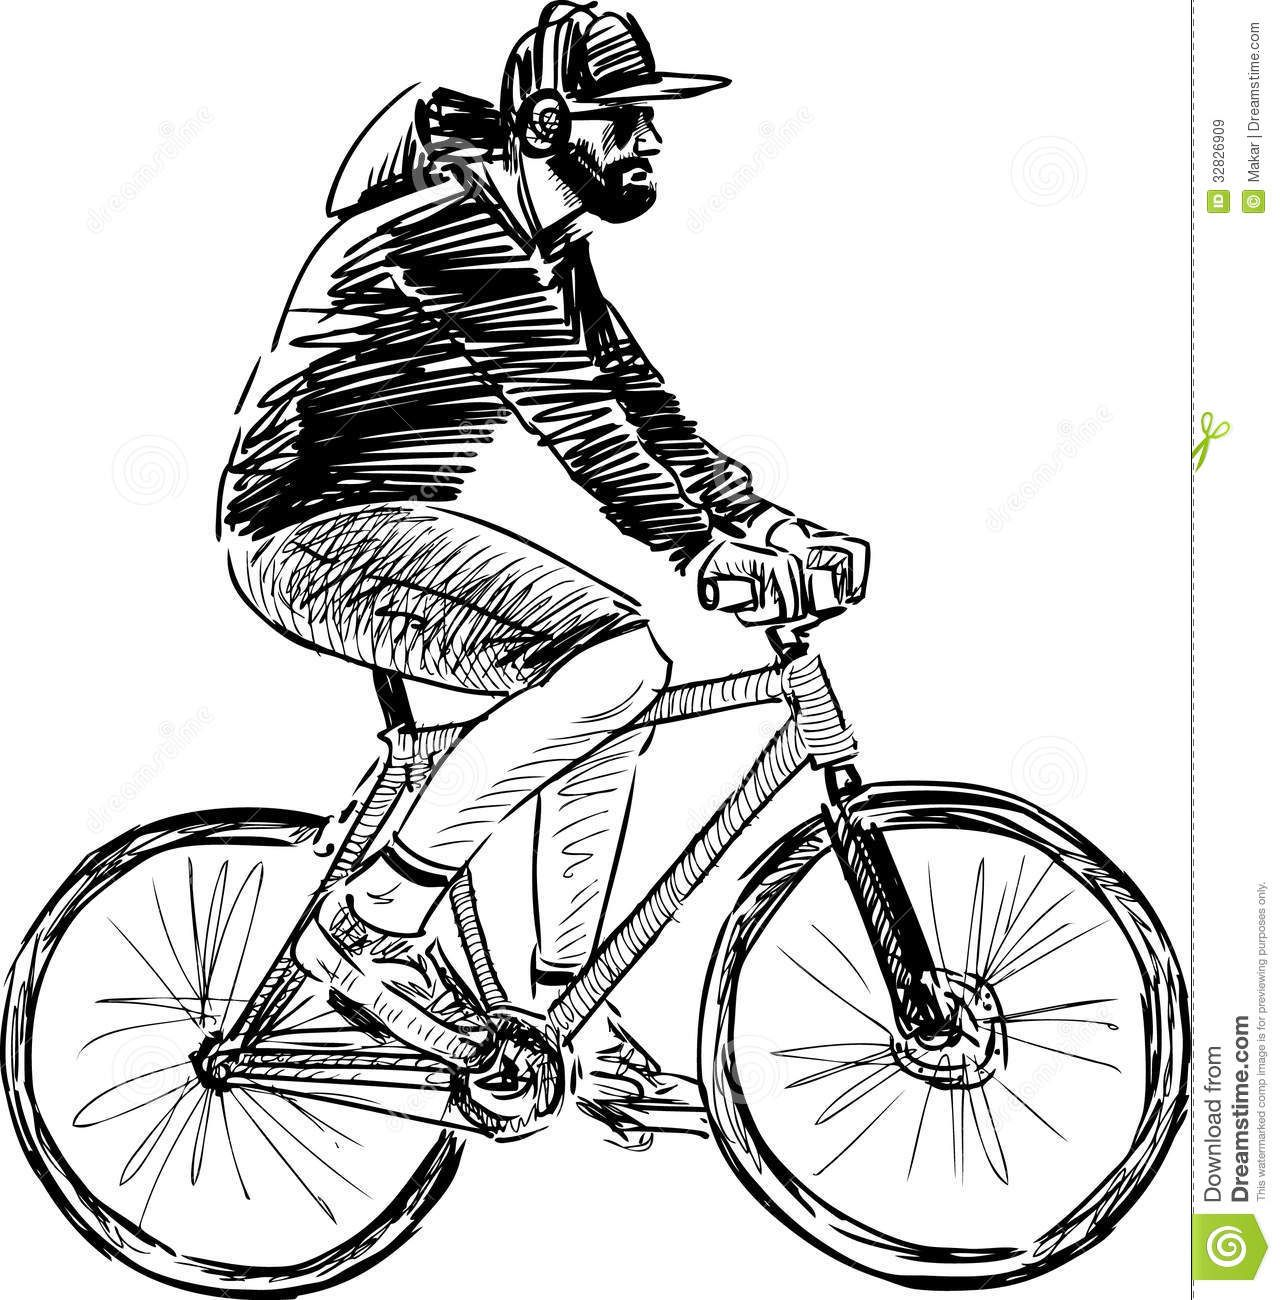 Person on bike drawing man riding a bicycle royalty free stock person on bike drawing man riding a bicycle royalty free stock images image 32826909 baditri Image collections